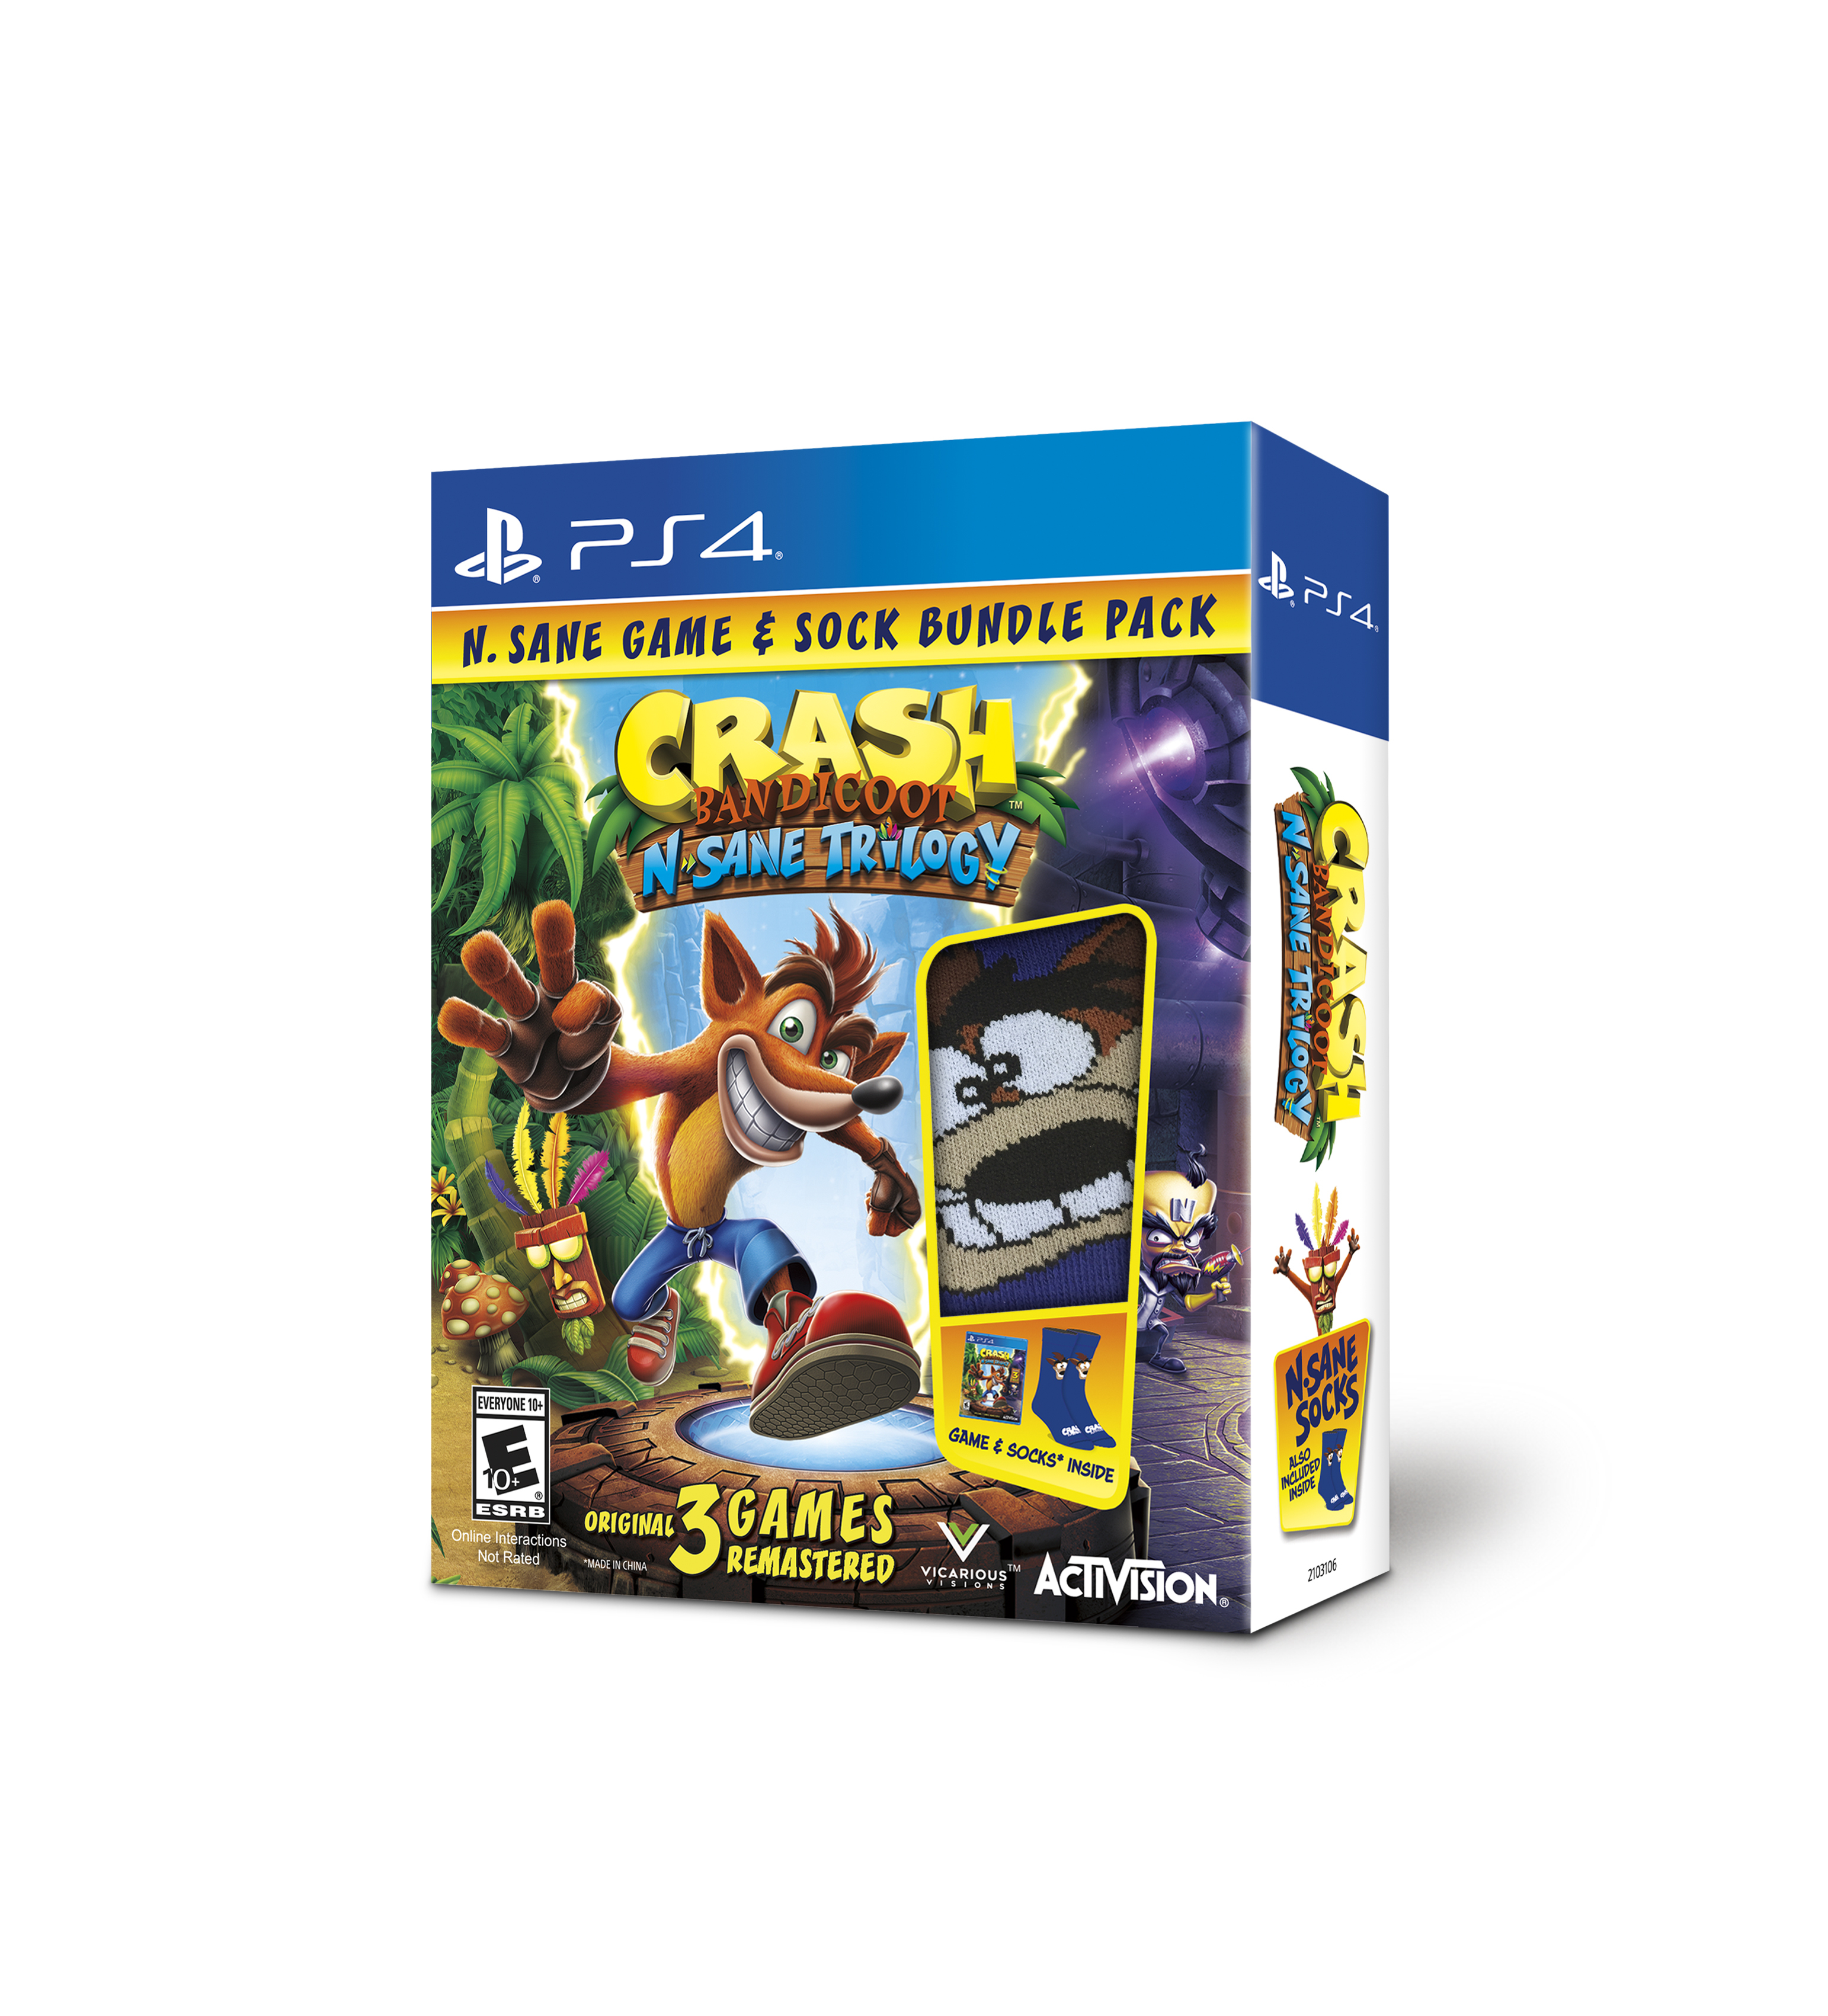 049978a1b N. Sane Offerings This Holiday for the Crash Bandicoot N. Sane Trilogy